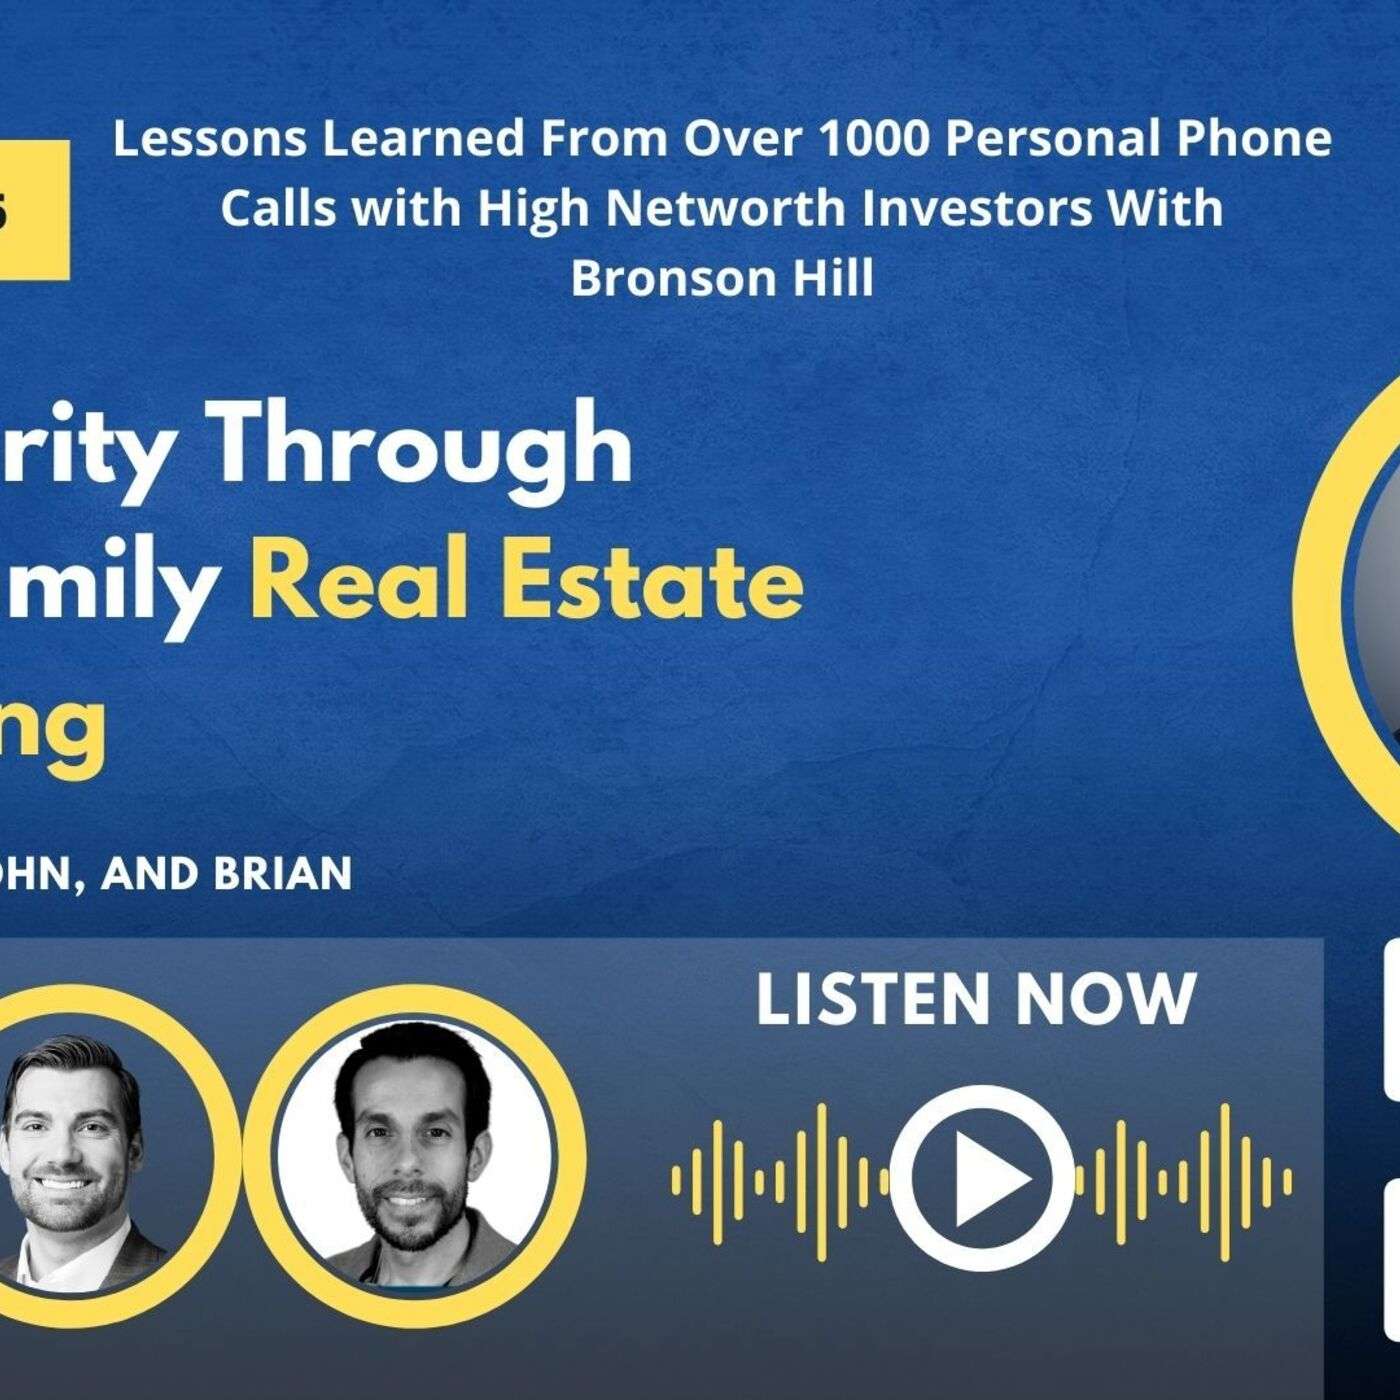 Lessons Learned From Over 1000 Personal Phone Calls with High Networth Investors with Bronson Hill